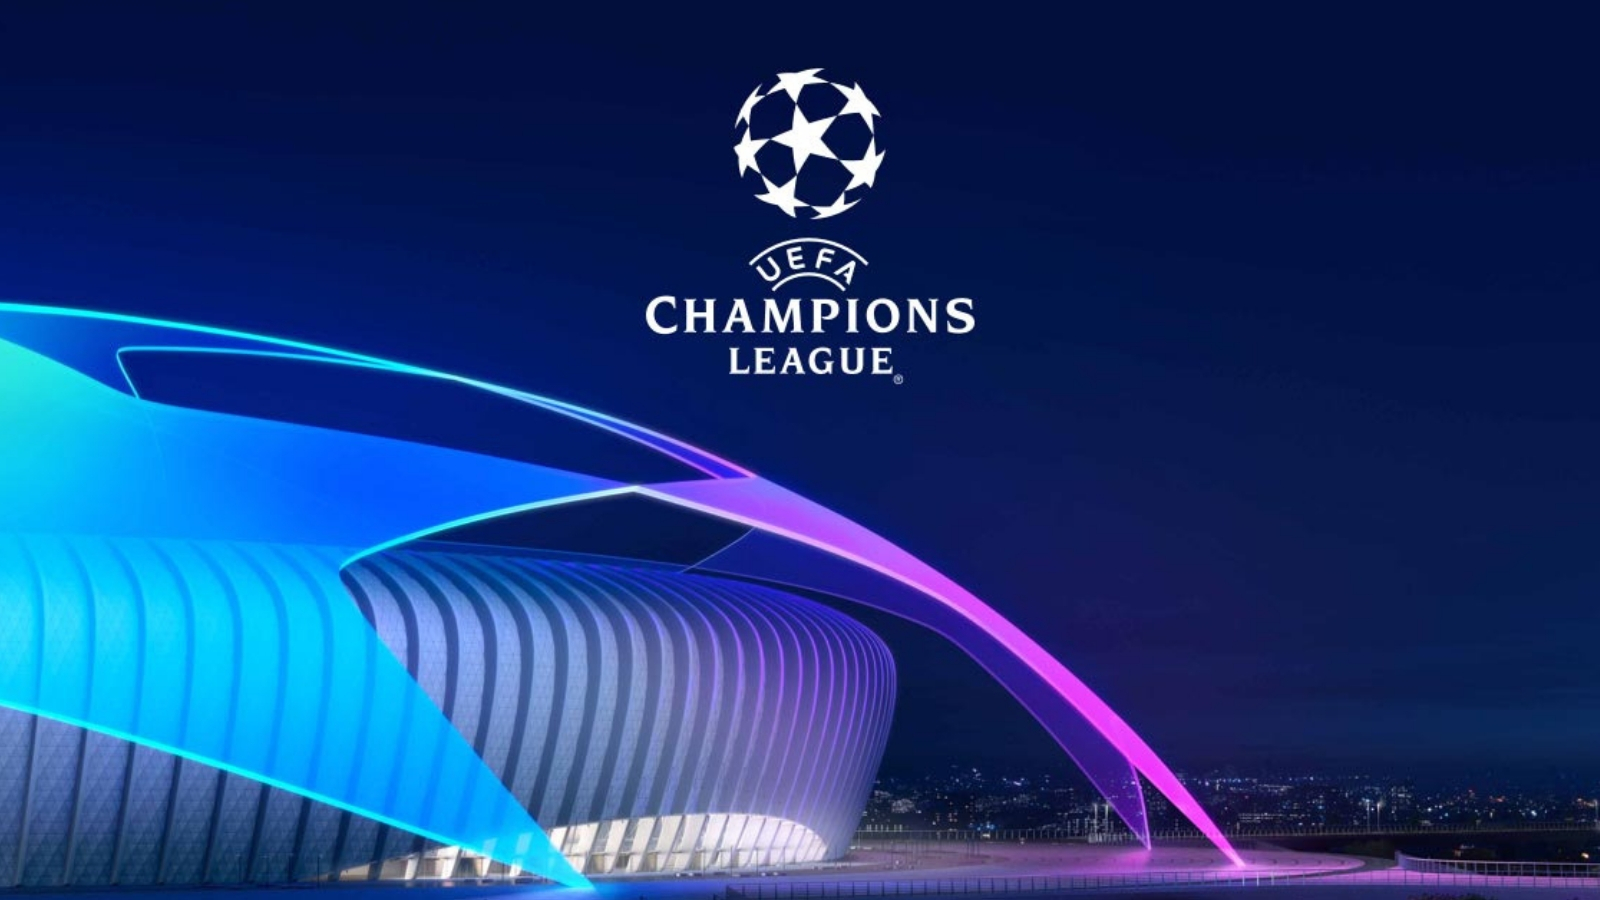 Download Uefa Champions League Wallpaper 4K